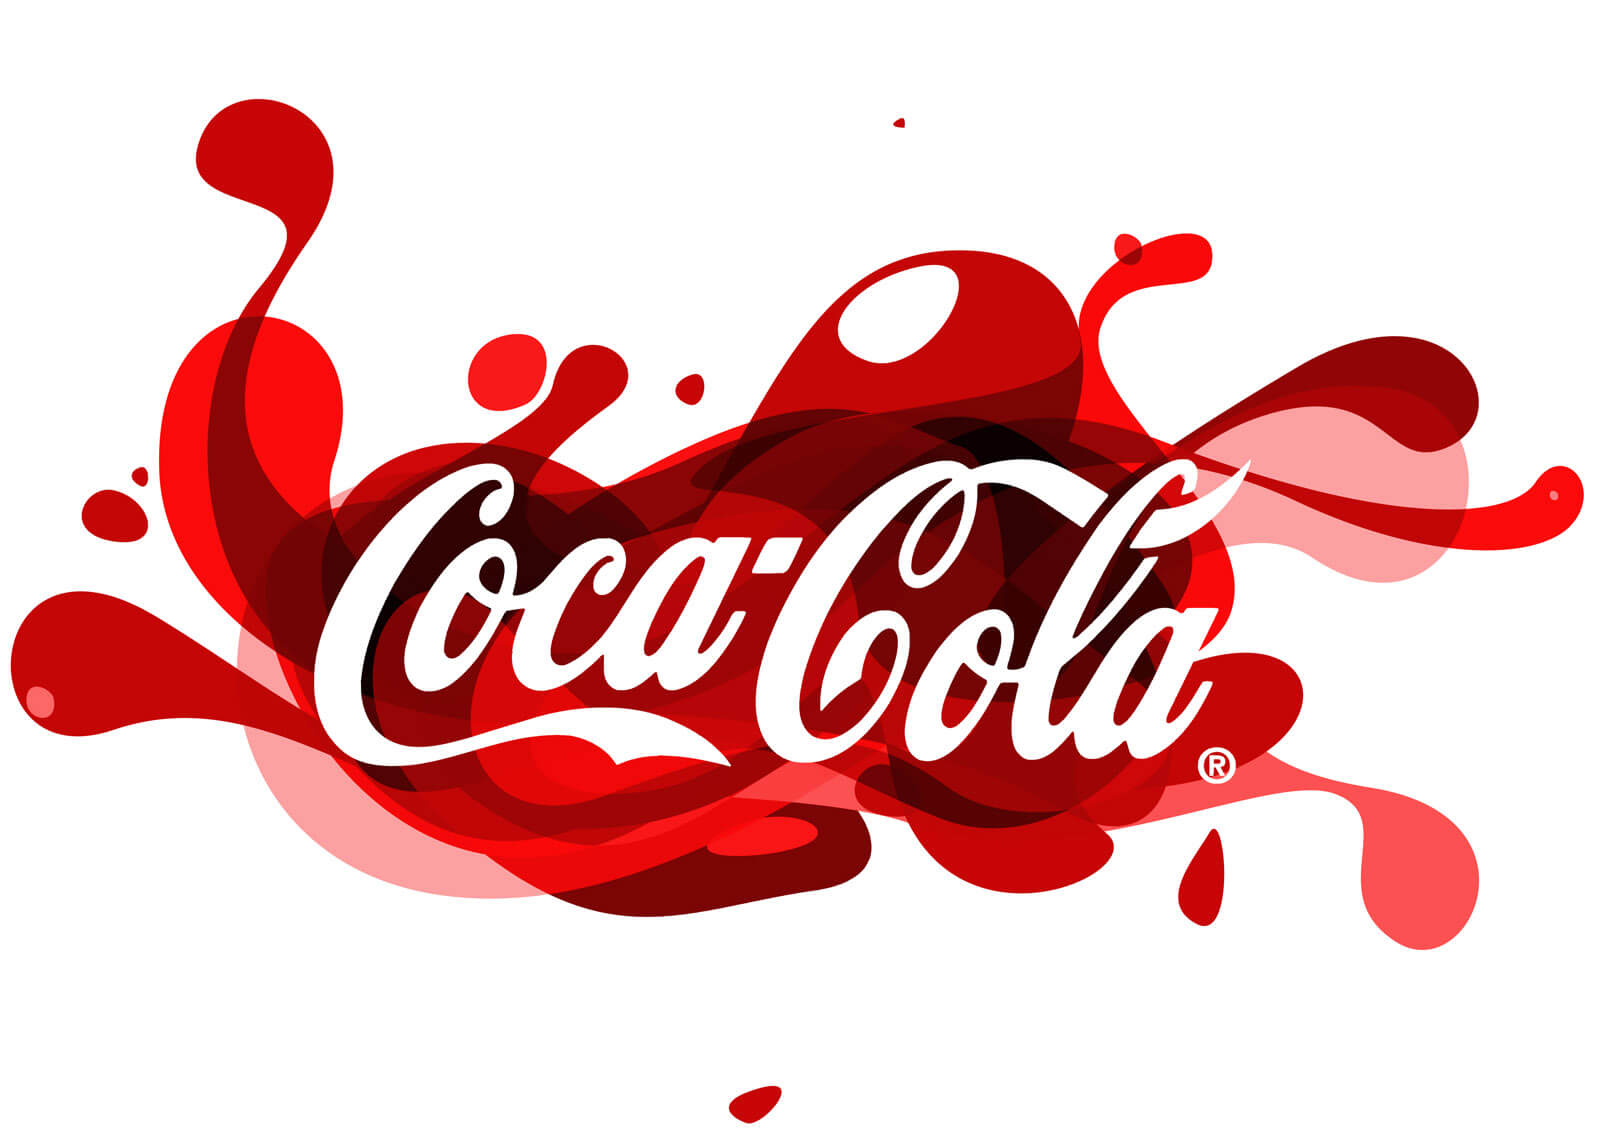 Coca Cola Free Ppt Backgrounds For Your Powerpoint Templates pertaining to Coca Cola Powerpoint Template